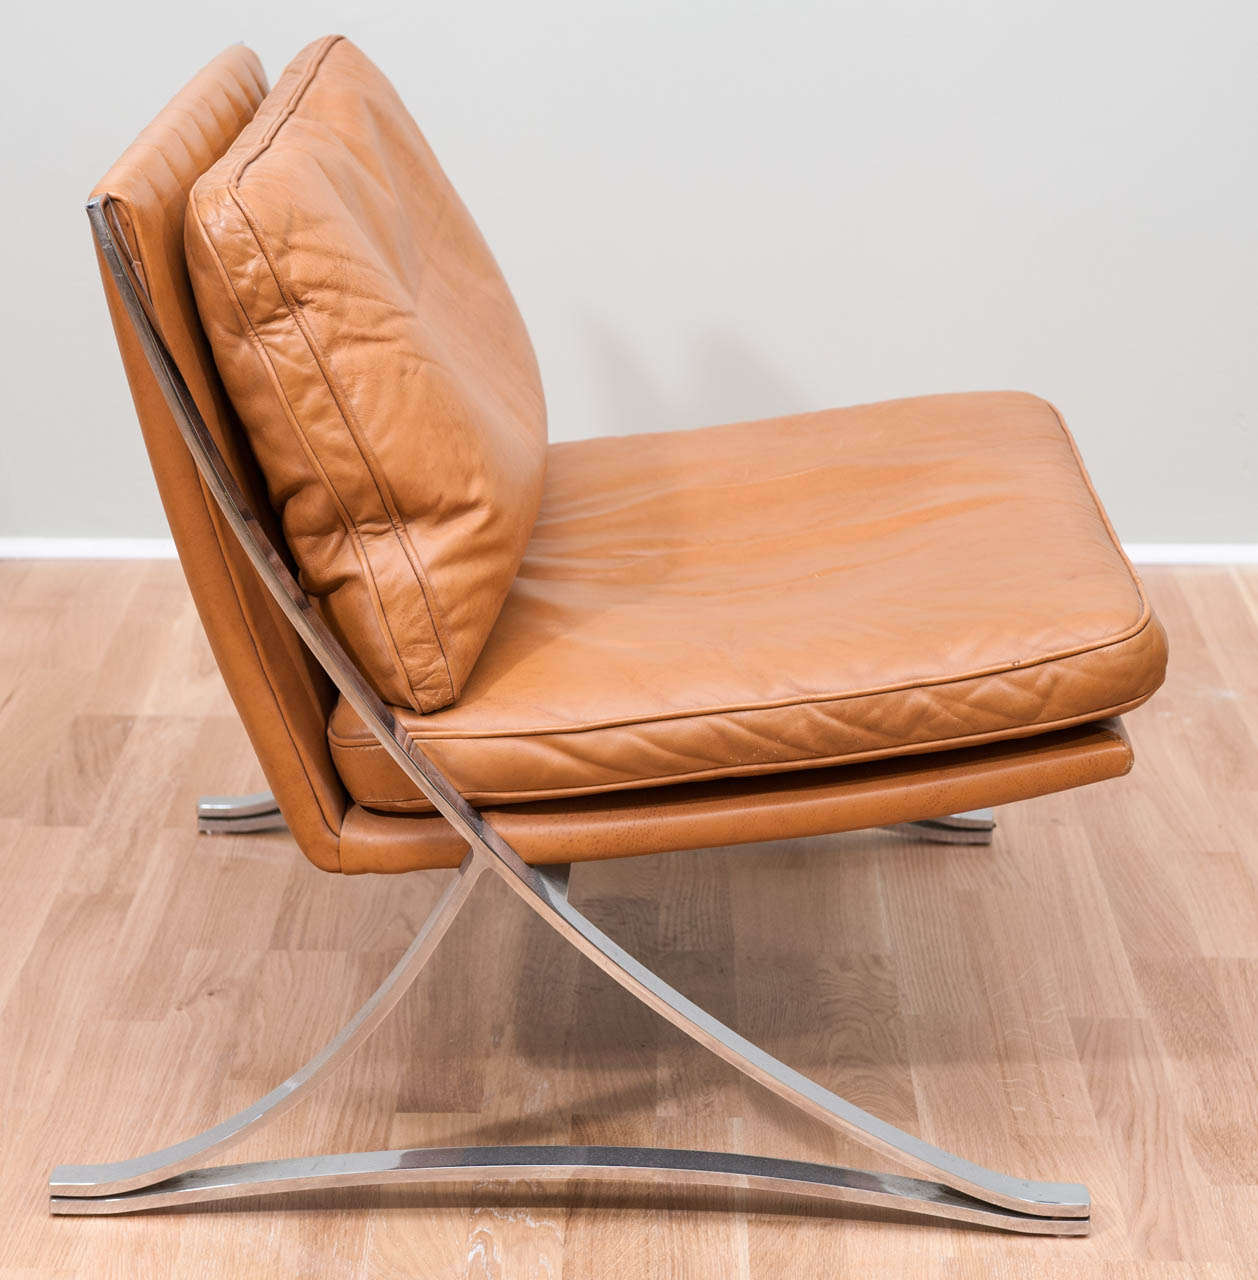 Pair of Vintage Leather Chairs In the Style of Mies van der Rohe 3